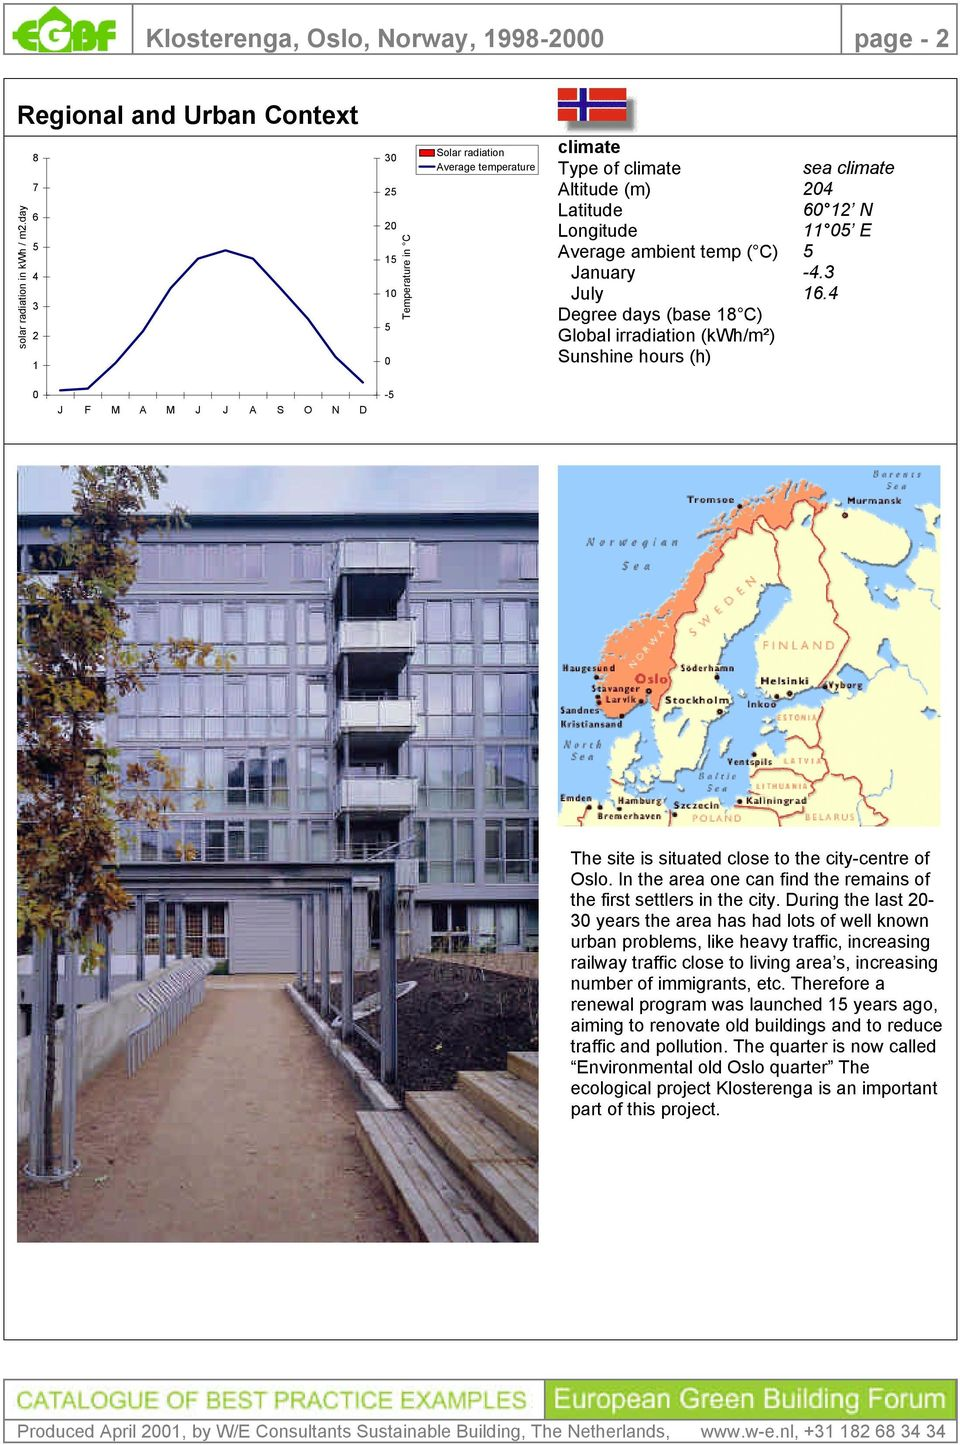 18 C) Global irradiation (kwh/m²) Sunshine hours (h) sea climate 204 60 12 N 11 0 E -4.3 16.4 0 J F M A M J J A S O N D - The site is situated close to the city-centre of Oslo.